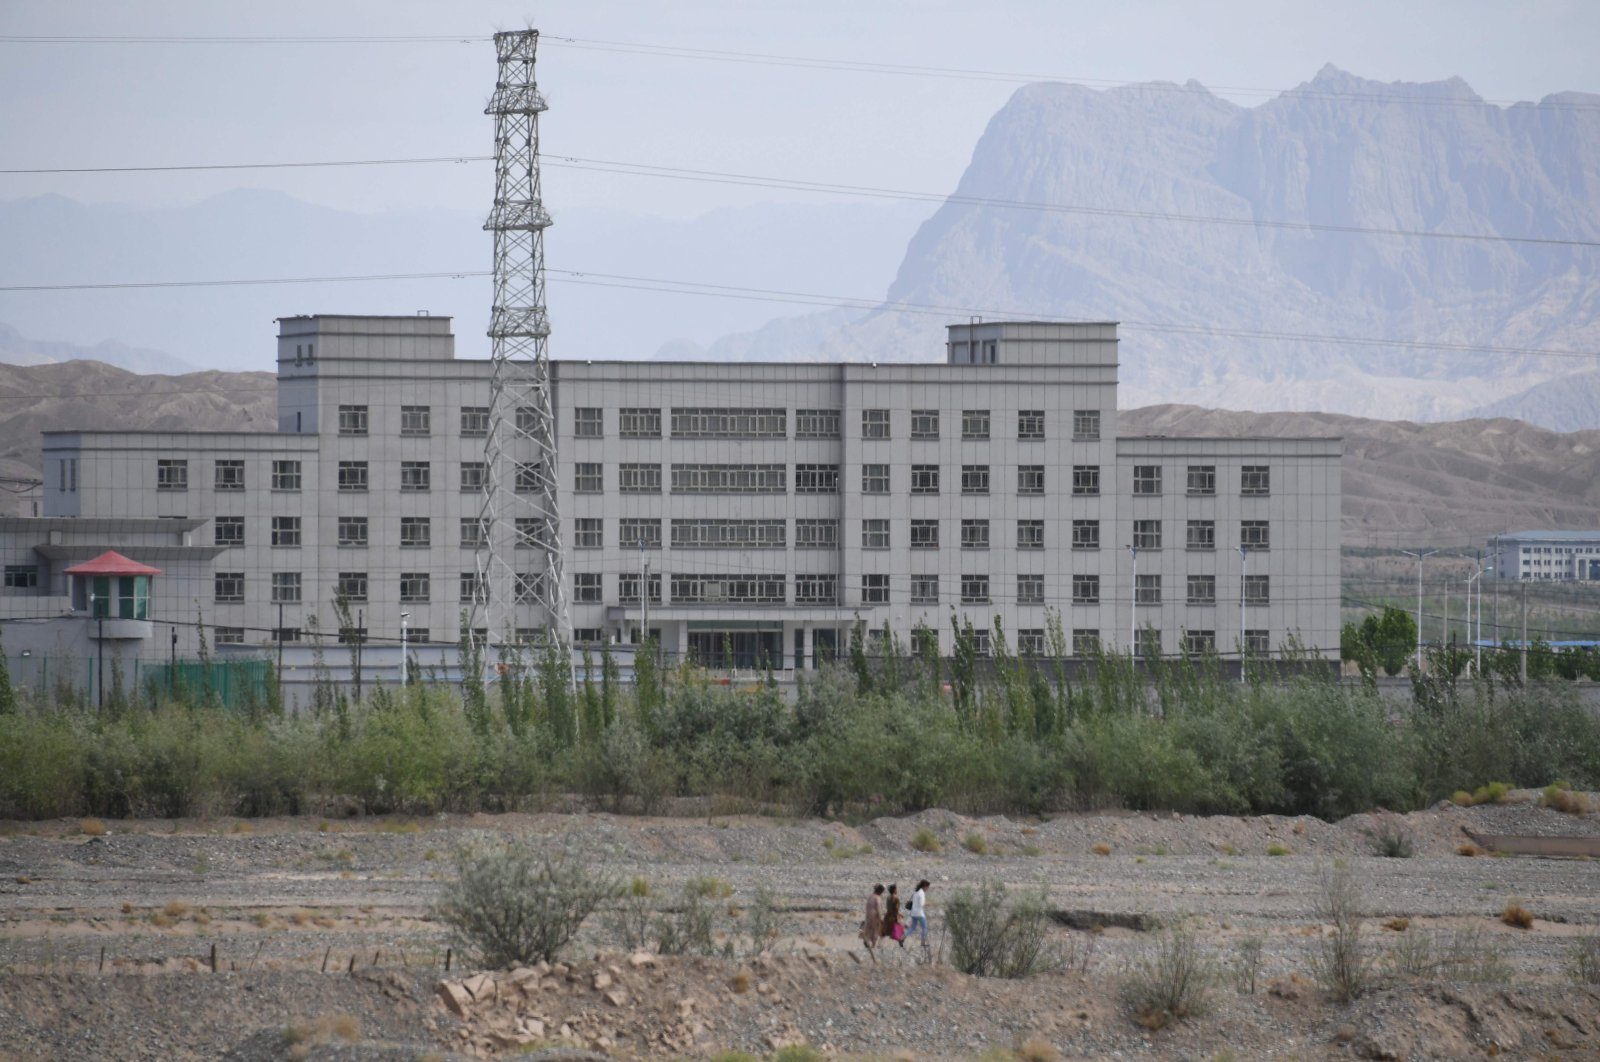 General view of a facility believed to be a re-education camp where mostly Muslim ethnic minorities are detained, in Artux, north of Kashgar, Xinjiang region, China, June 2, 2019. (AFP Photo)